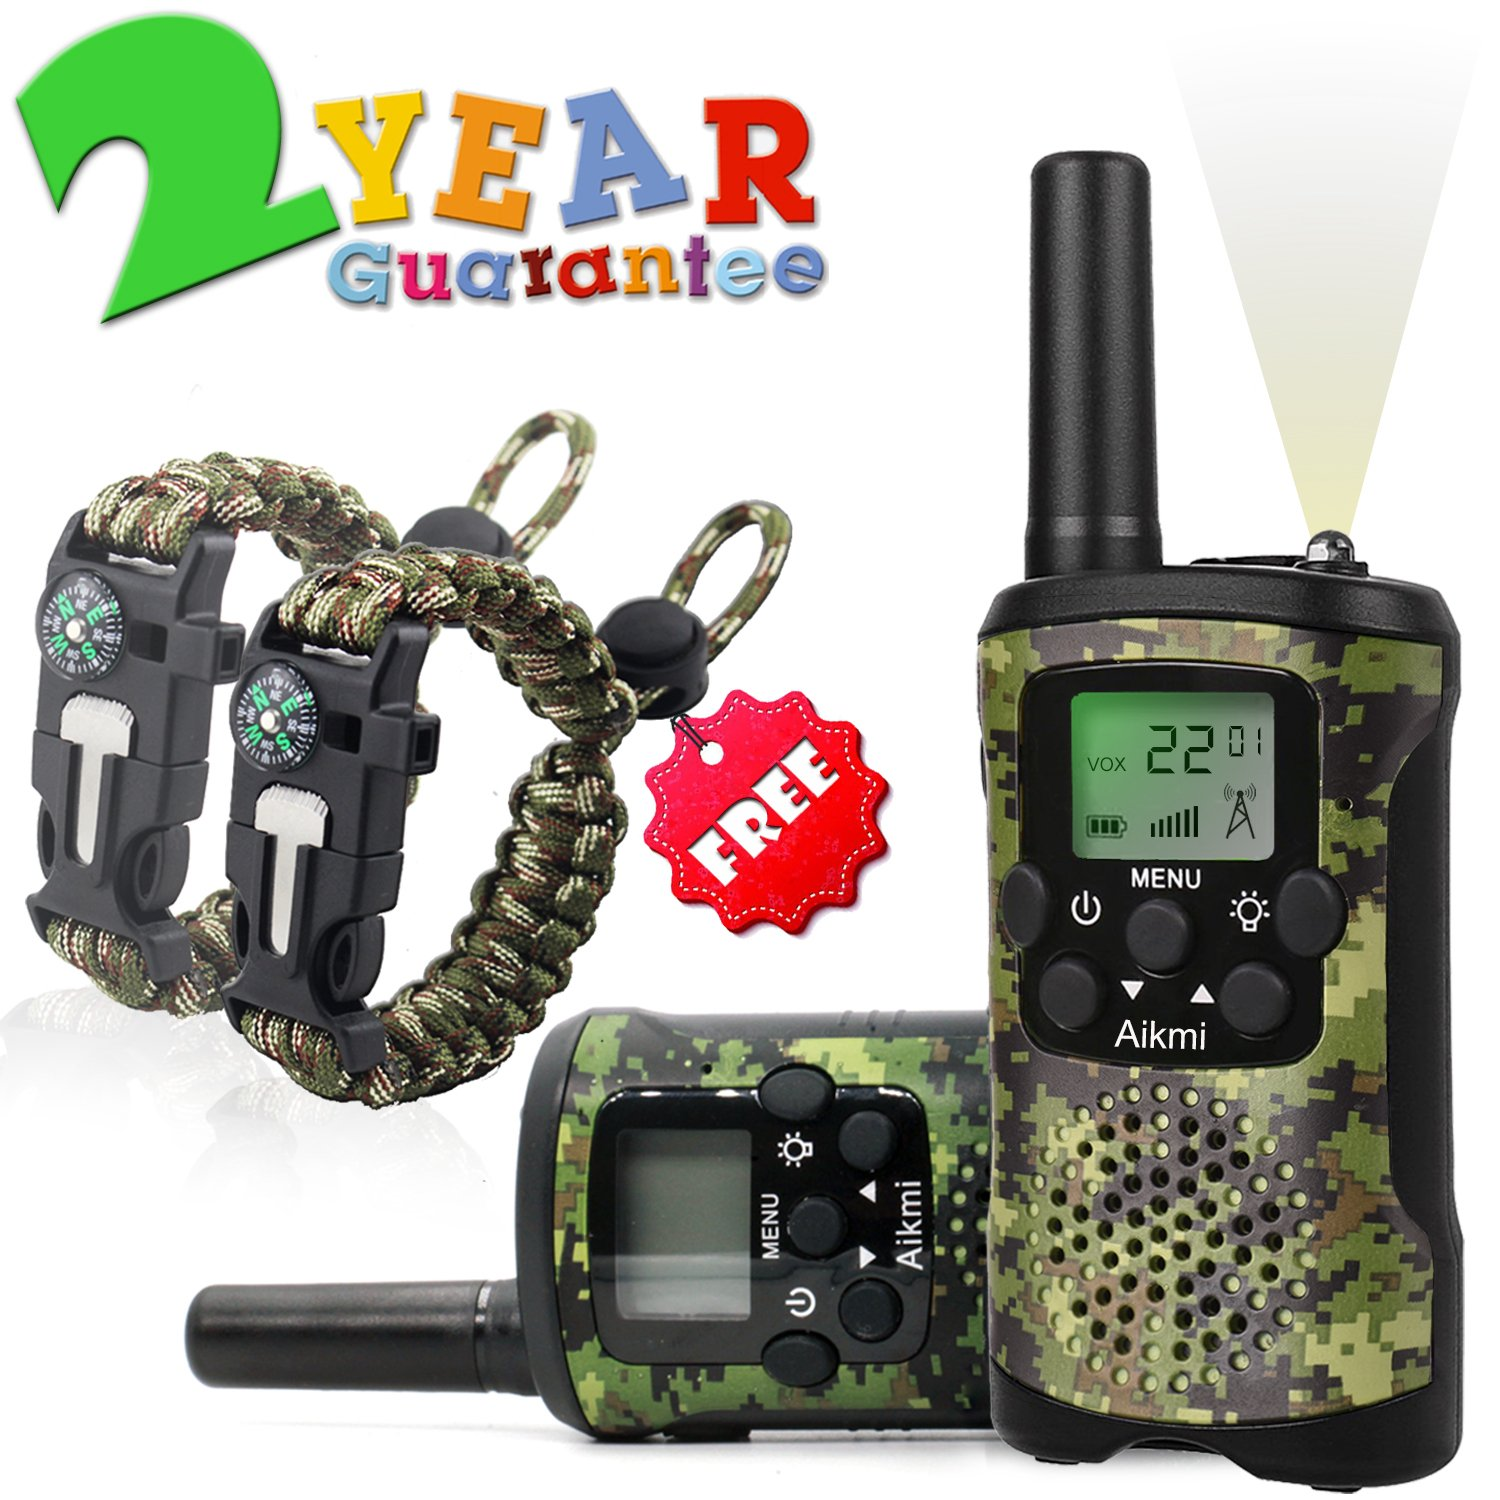 Walkie Talkies for Kids 22 Channel 2 Way Radio 3 Miles Long Range Handheld Walkie Talkies Durable Toy Best Birthday Gifts for 6 year old Boys and Girls fit Outdoor Adventure Game Camping (Green Camo) by Aikmi (Image #1)